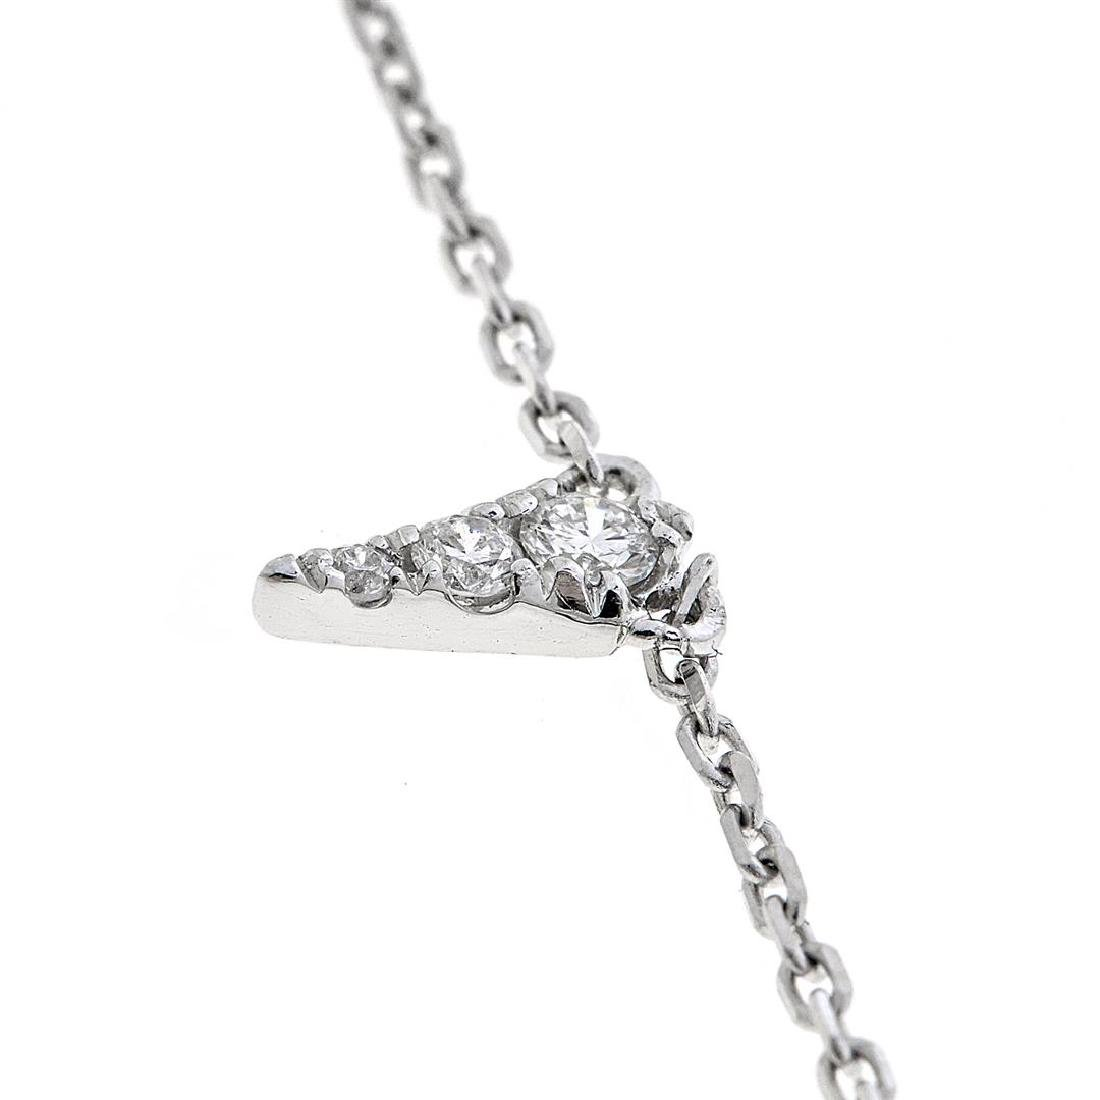 0.31 ctw Diamond Necklace - 18KT White Gold